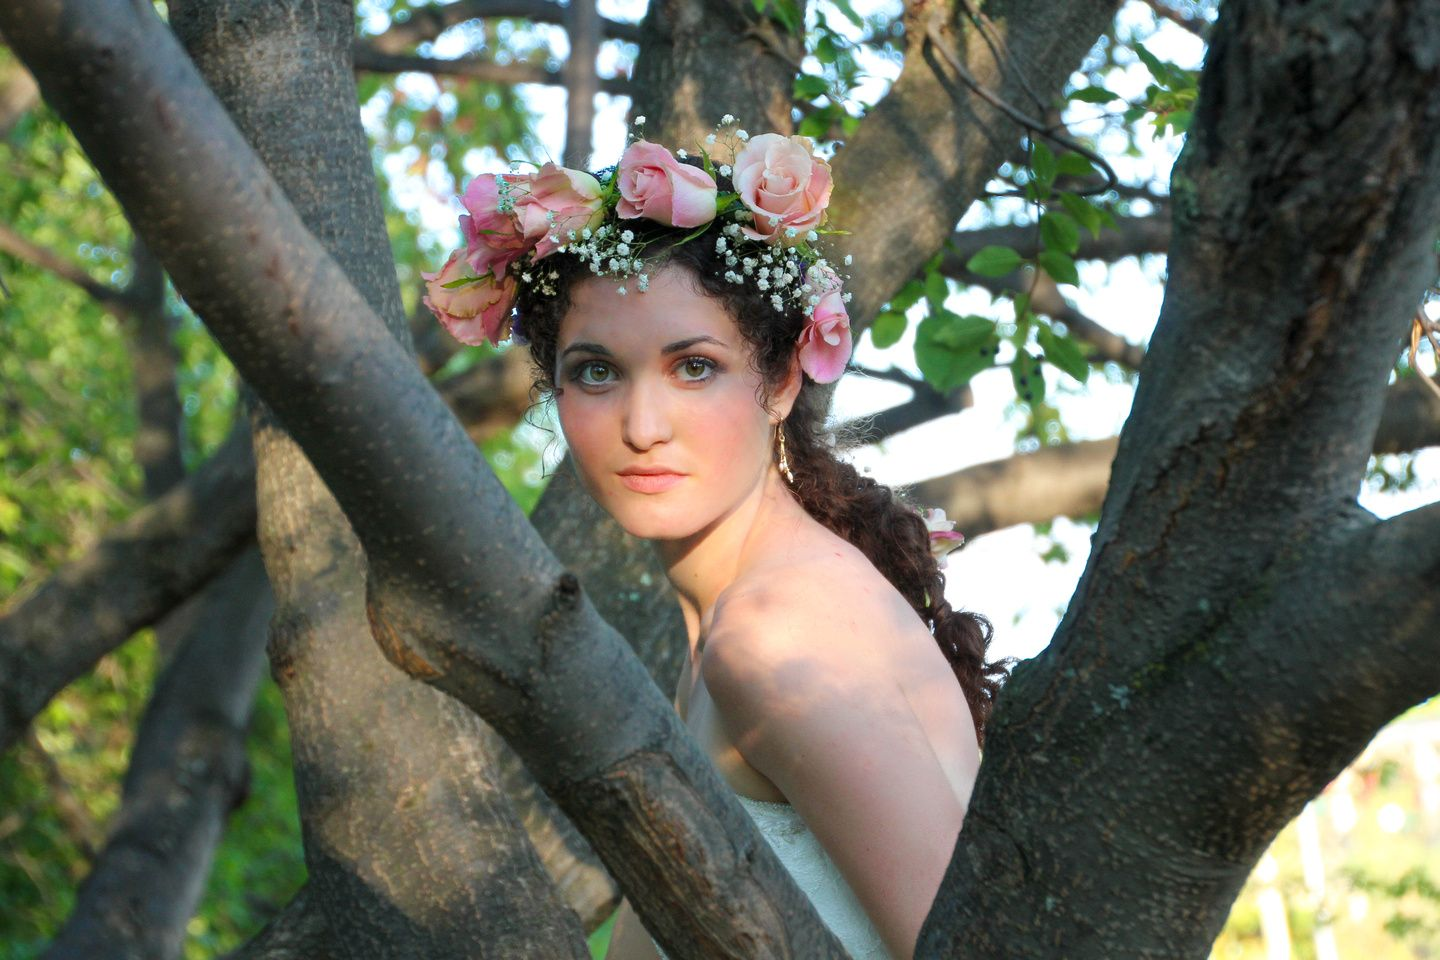 Boho Princess Bride. Romantic, fairytale inspiration for a woodsy, fantasy wedding. Katie Kreations Photography